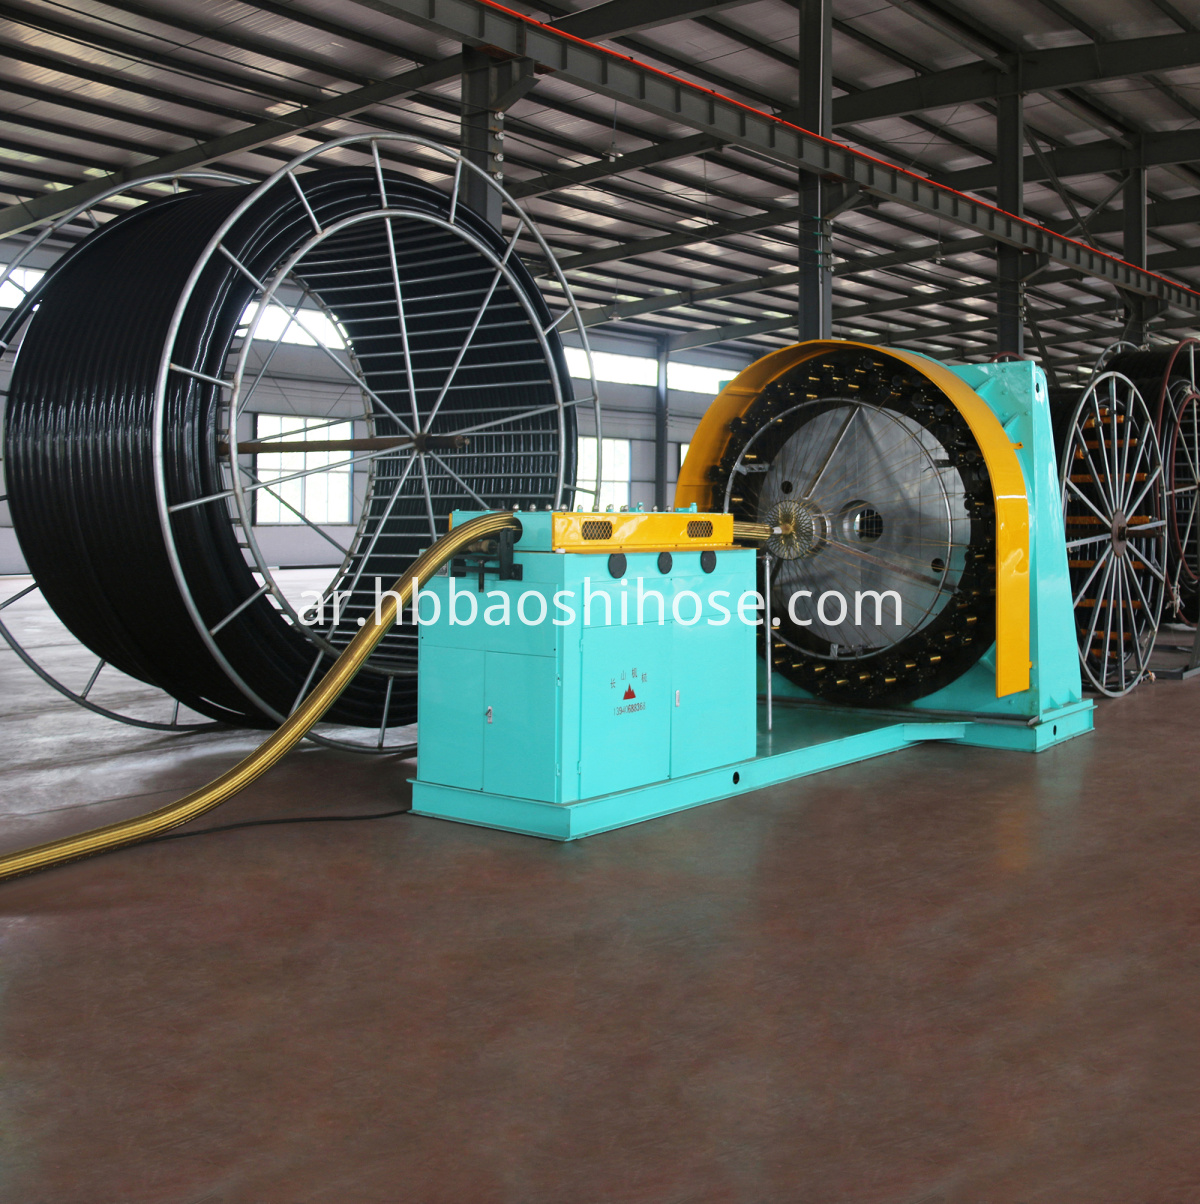 HDPE Braided Composite Pipeline